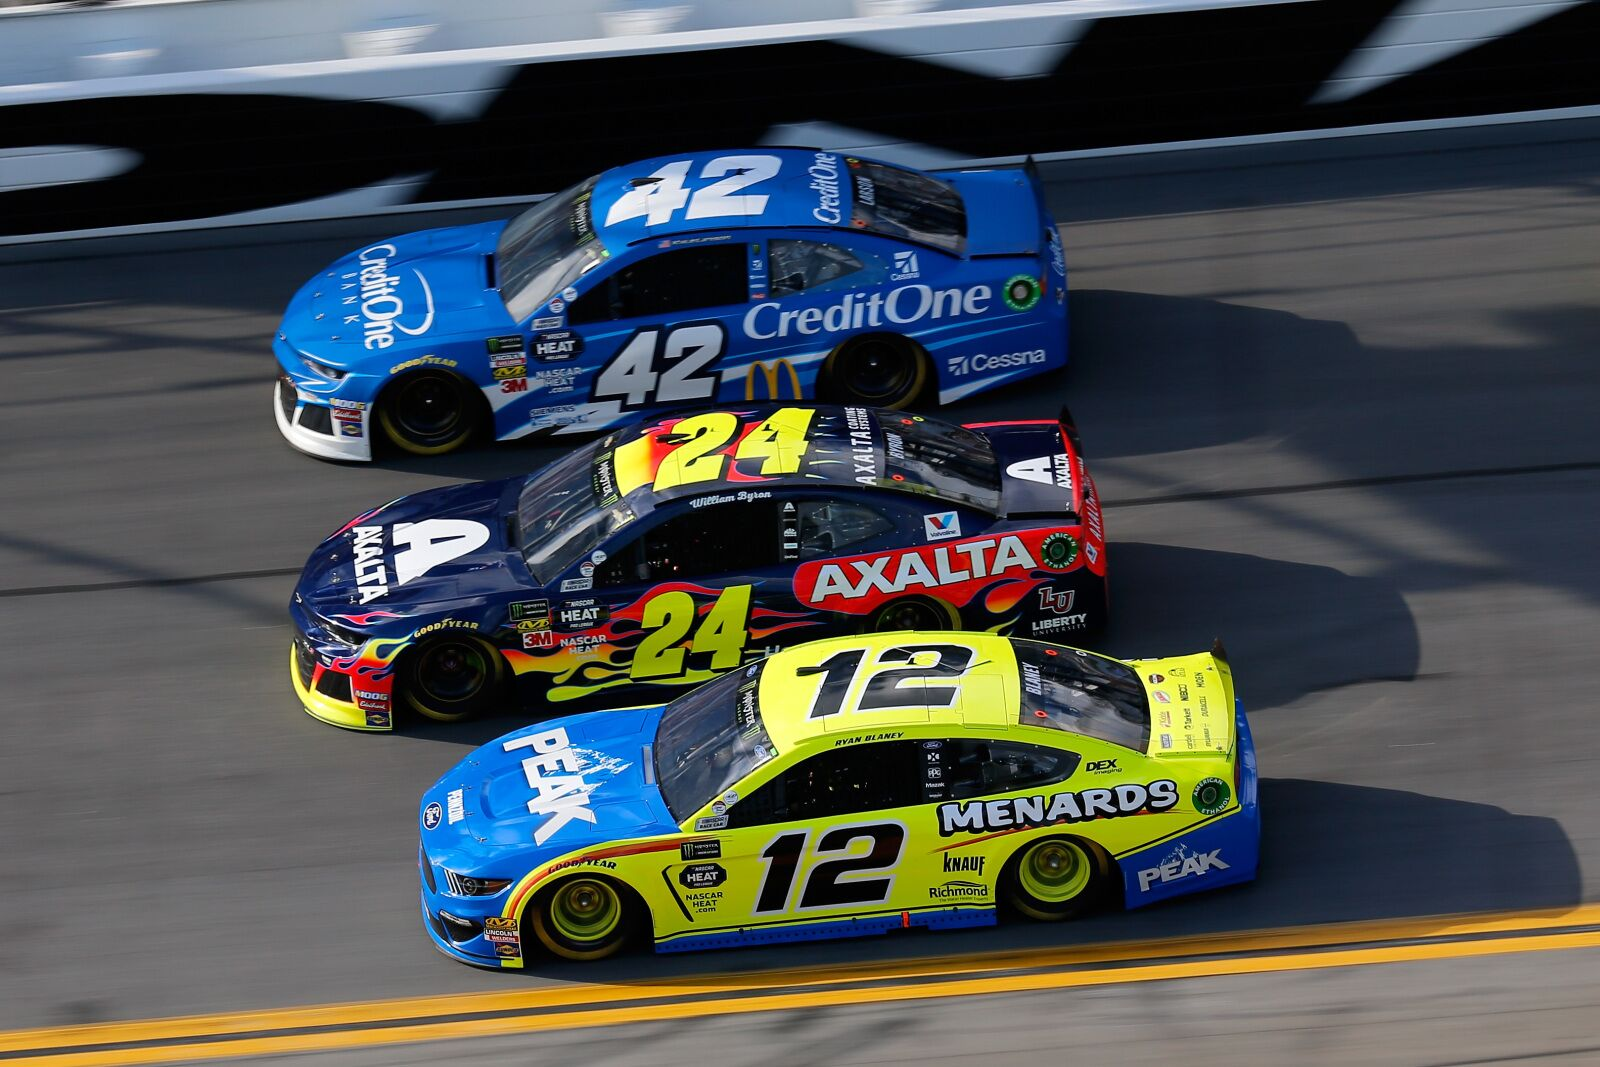 NASCAR Cup Series: 2019 playoff picture coming into focus